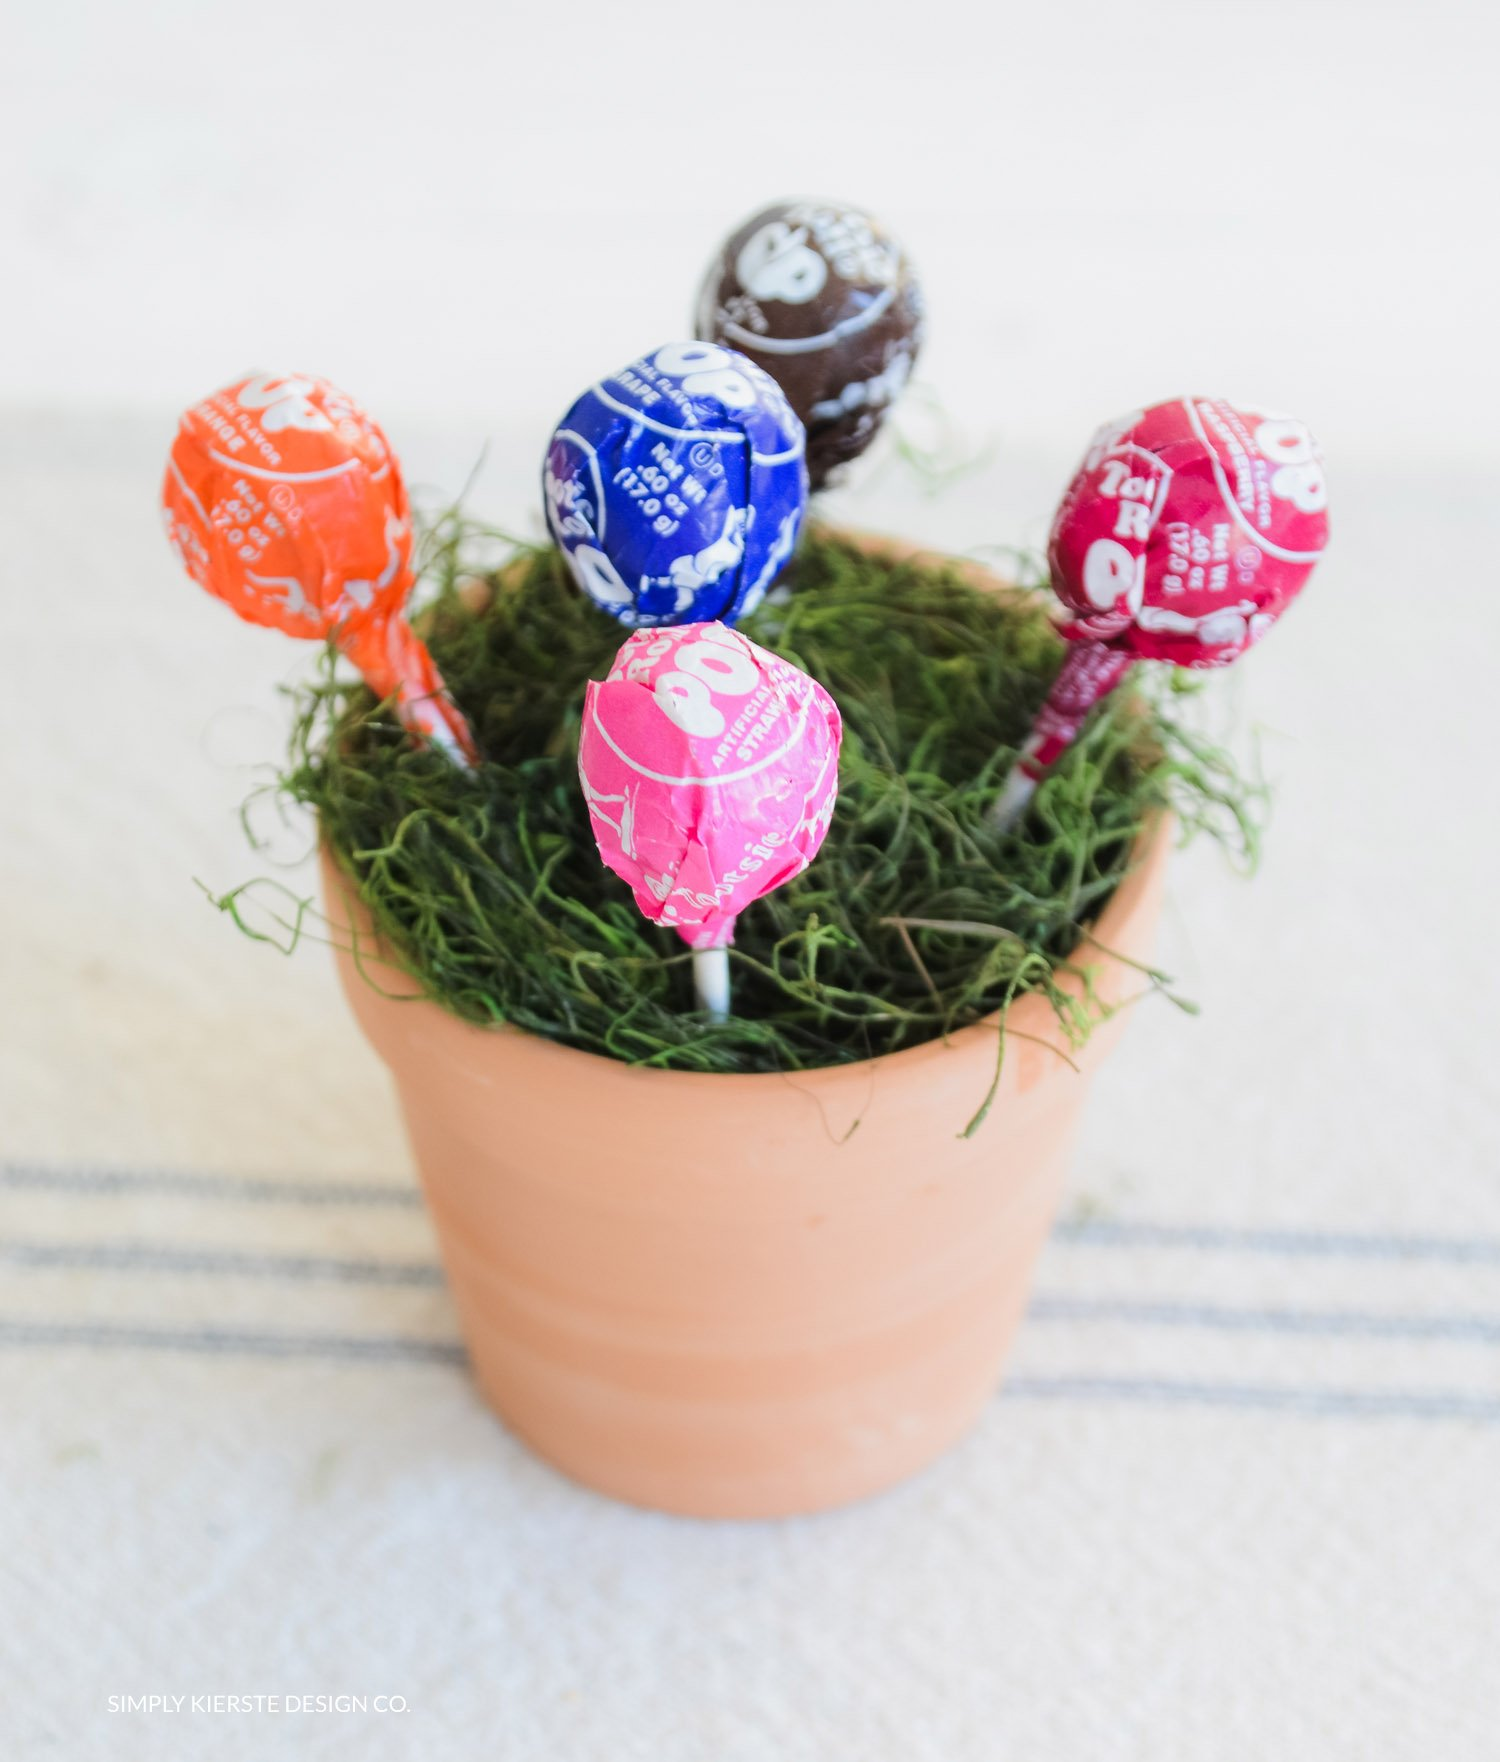 Magic Jelly Beans & Lollipop Garden | Easter Tradition | simplykierste.com